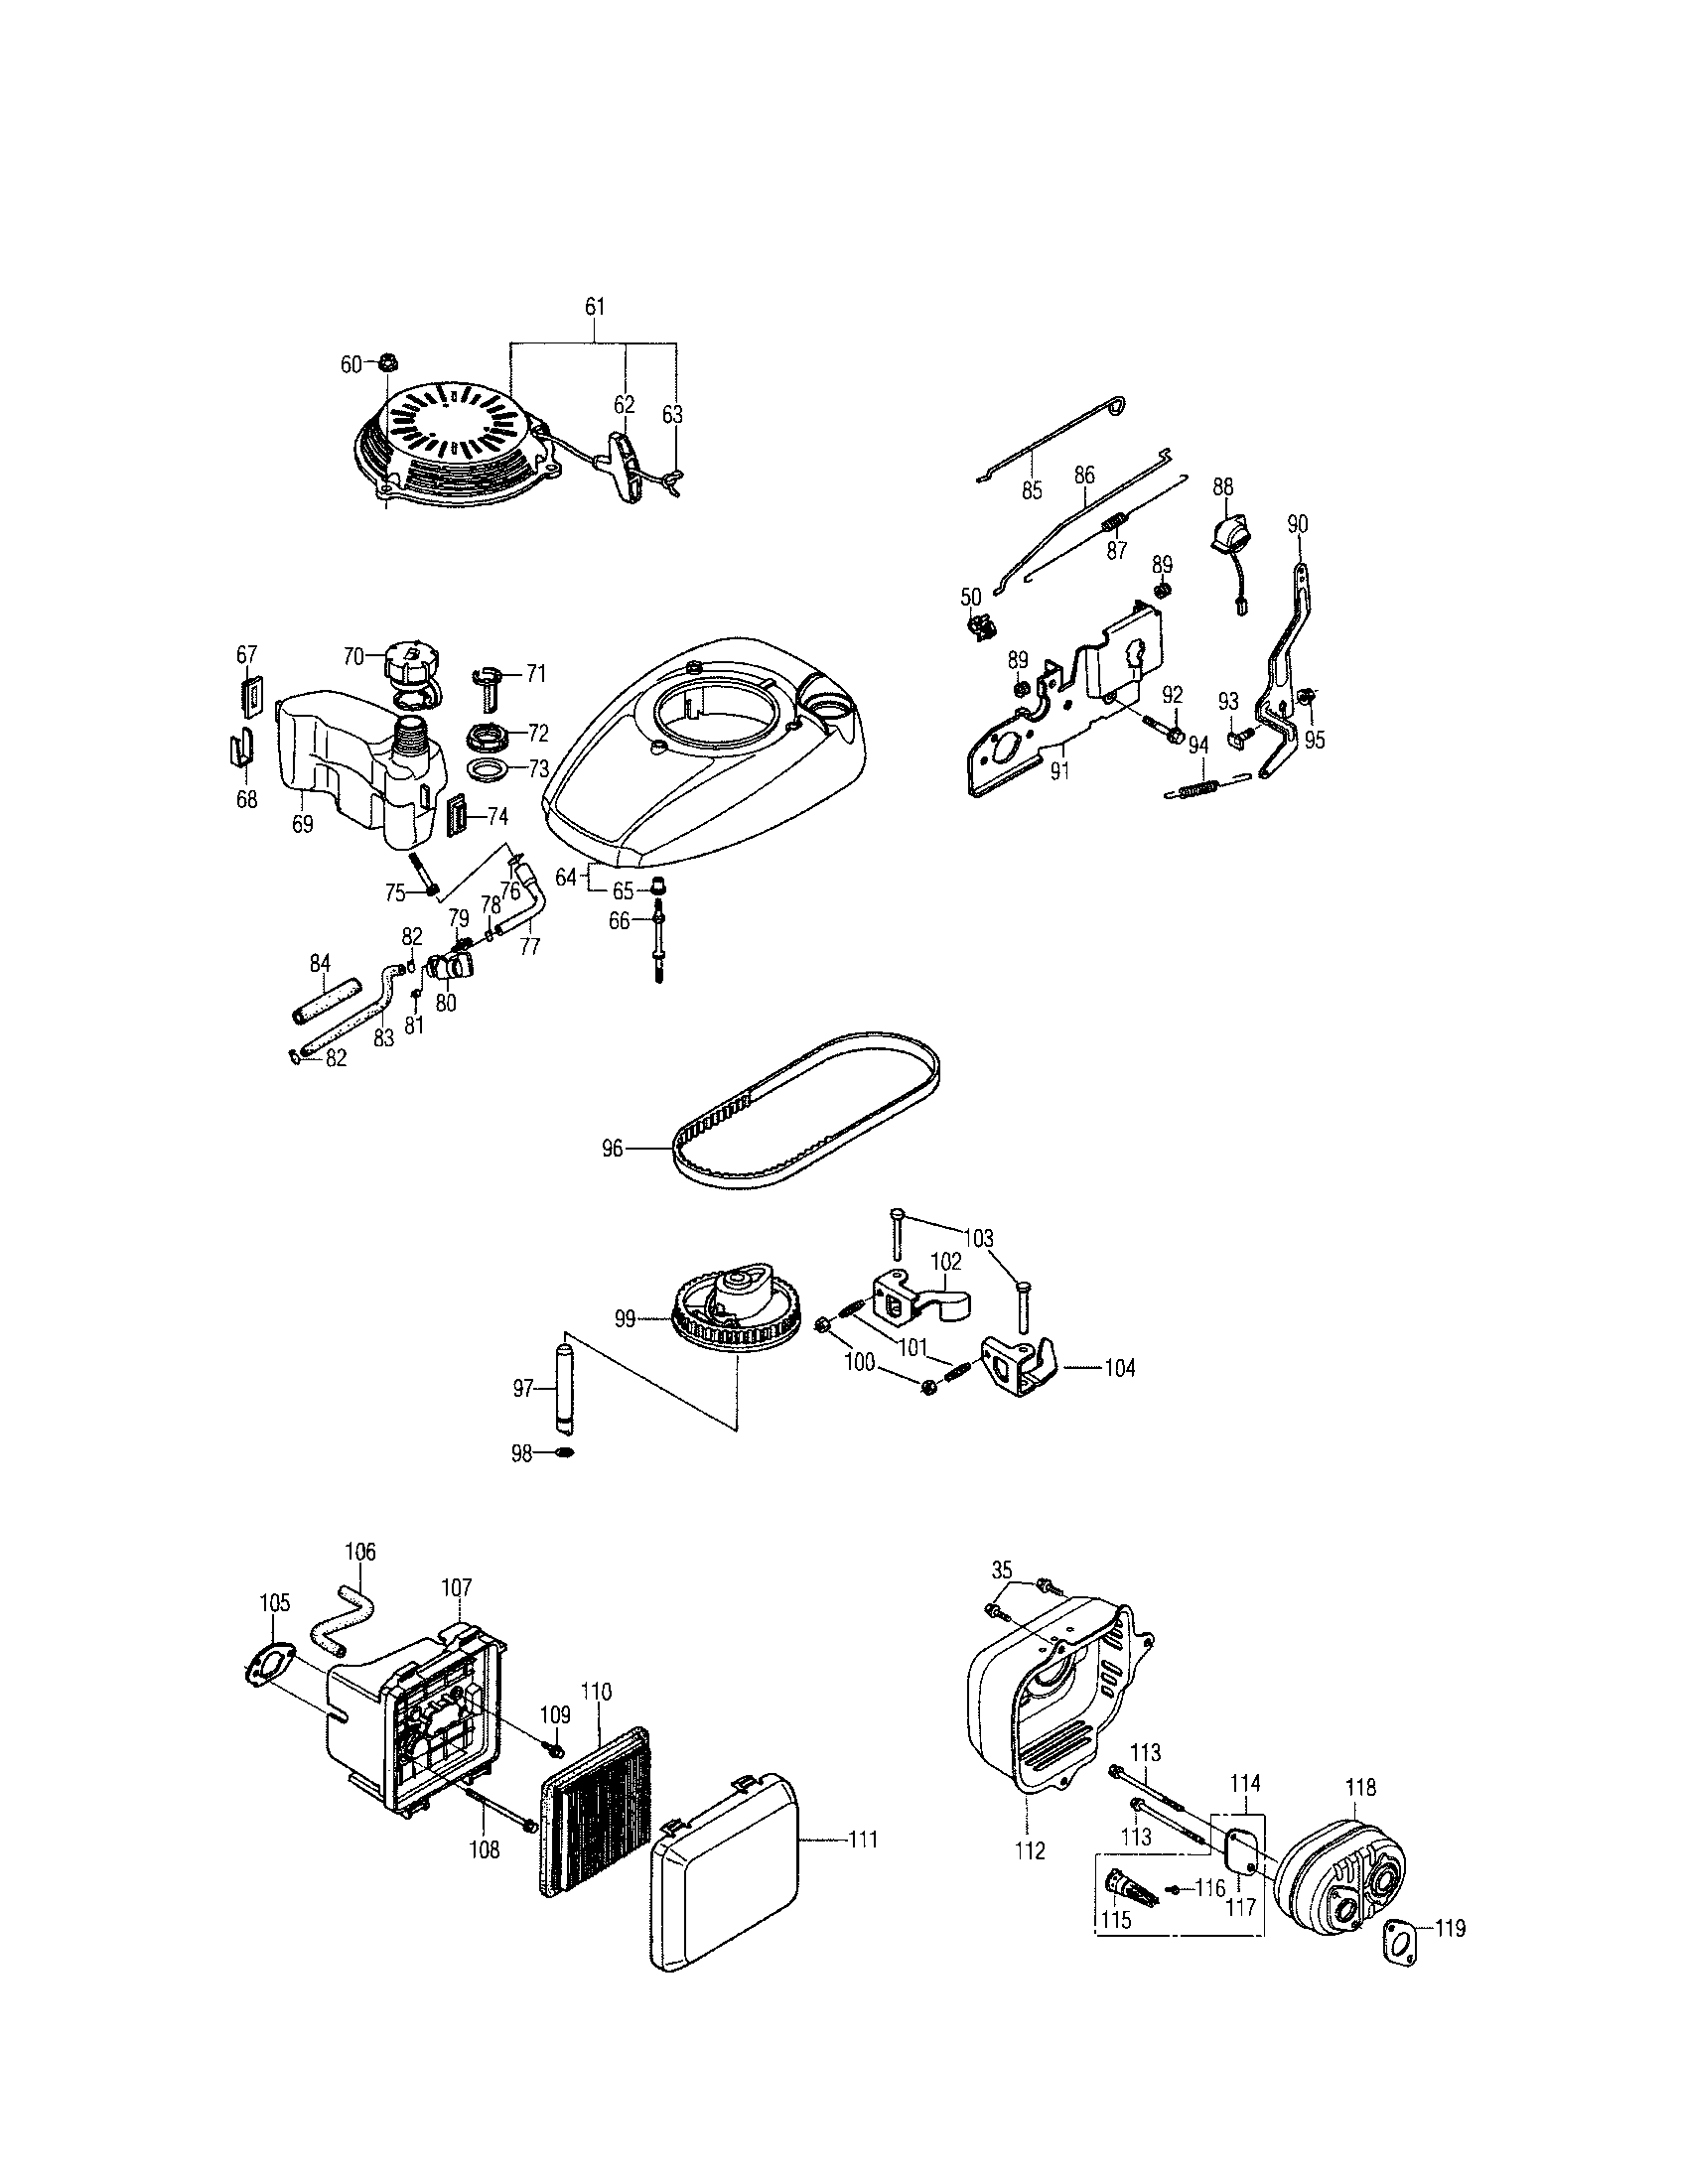 hight resolution of honda gcv160 lan5r fuel tank air cleaner diagram